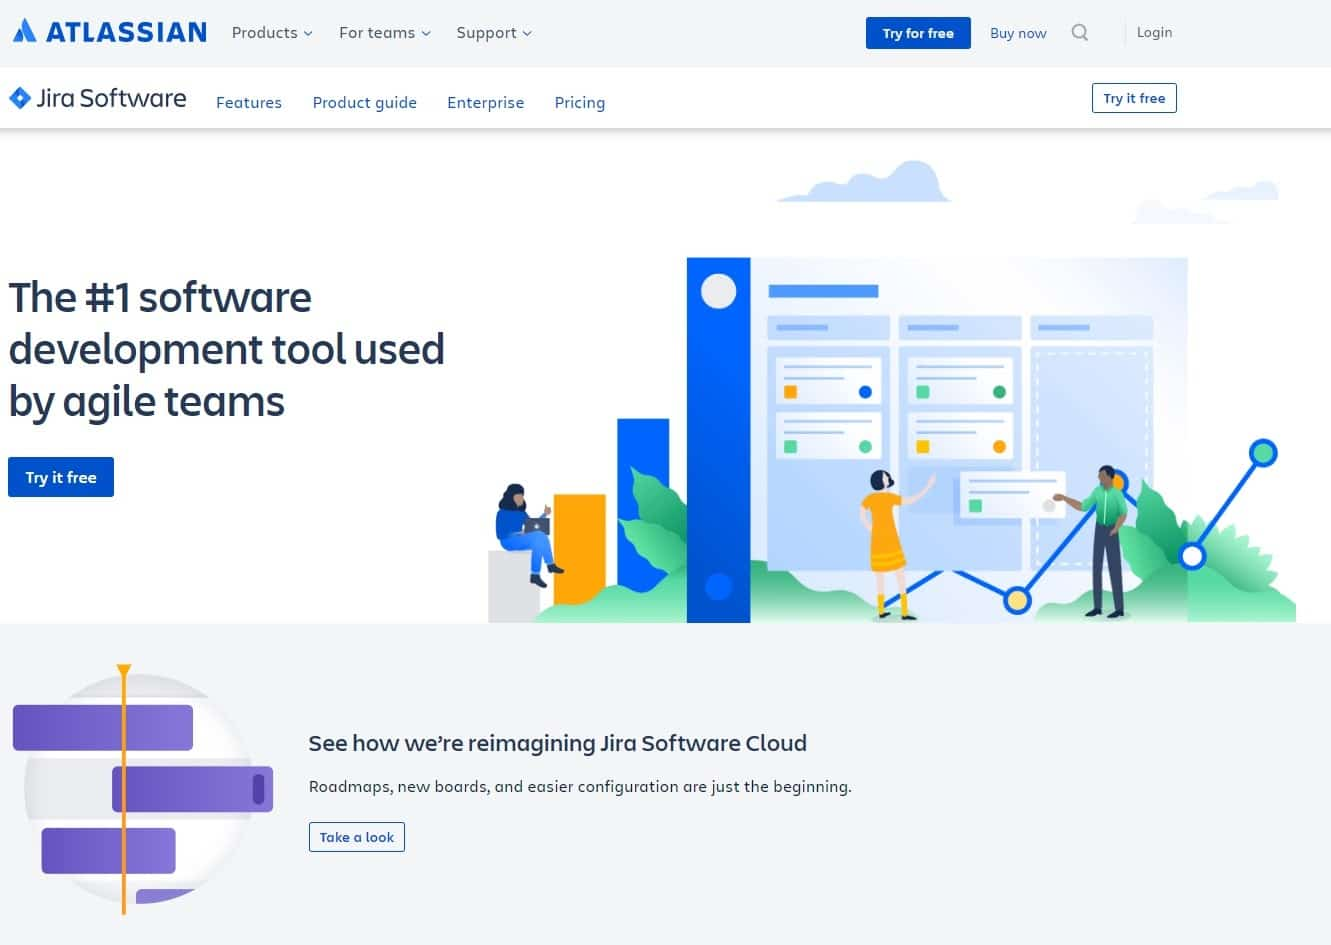 SaaS products: atlassian